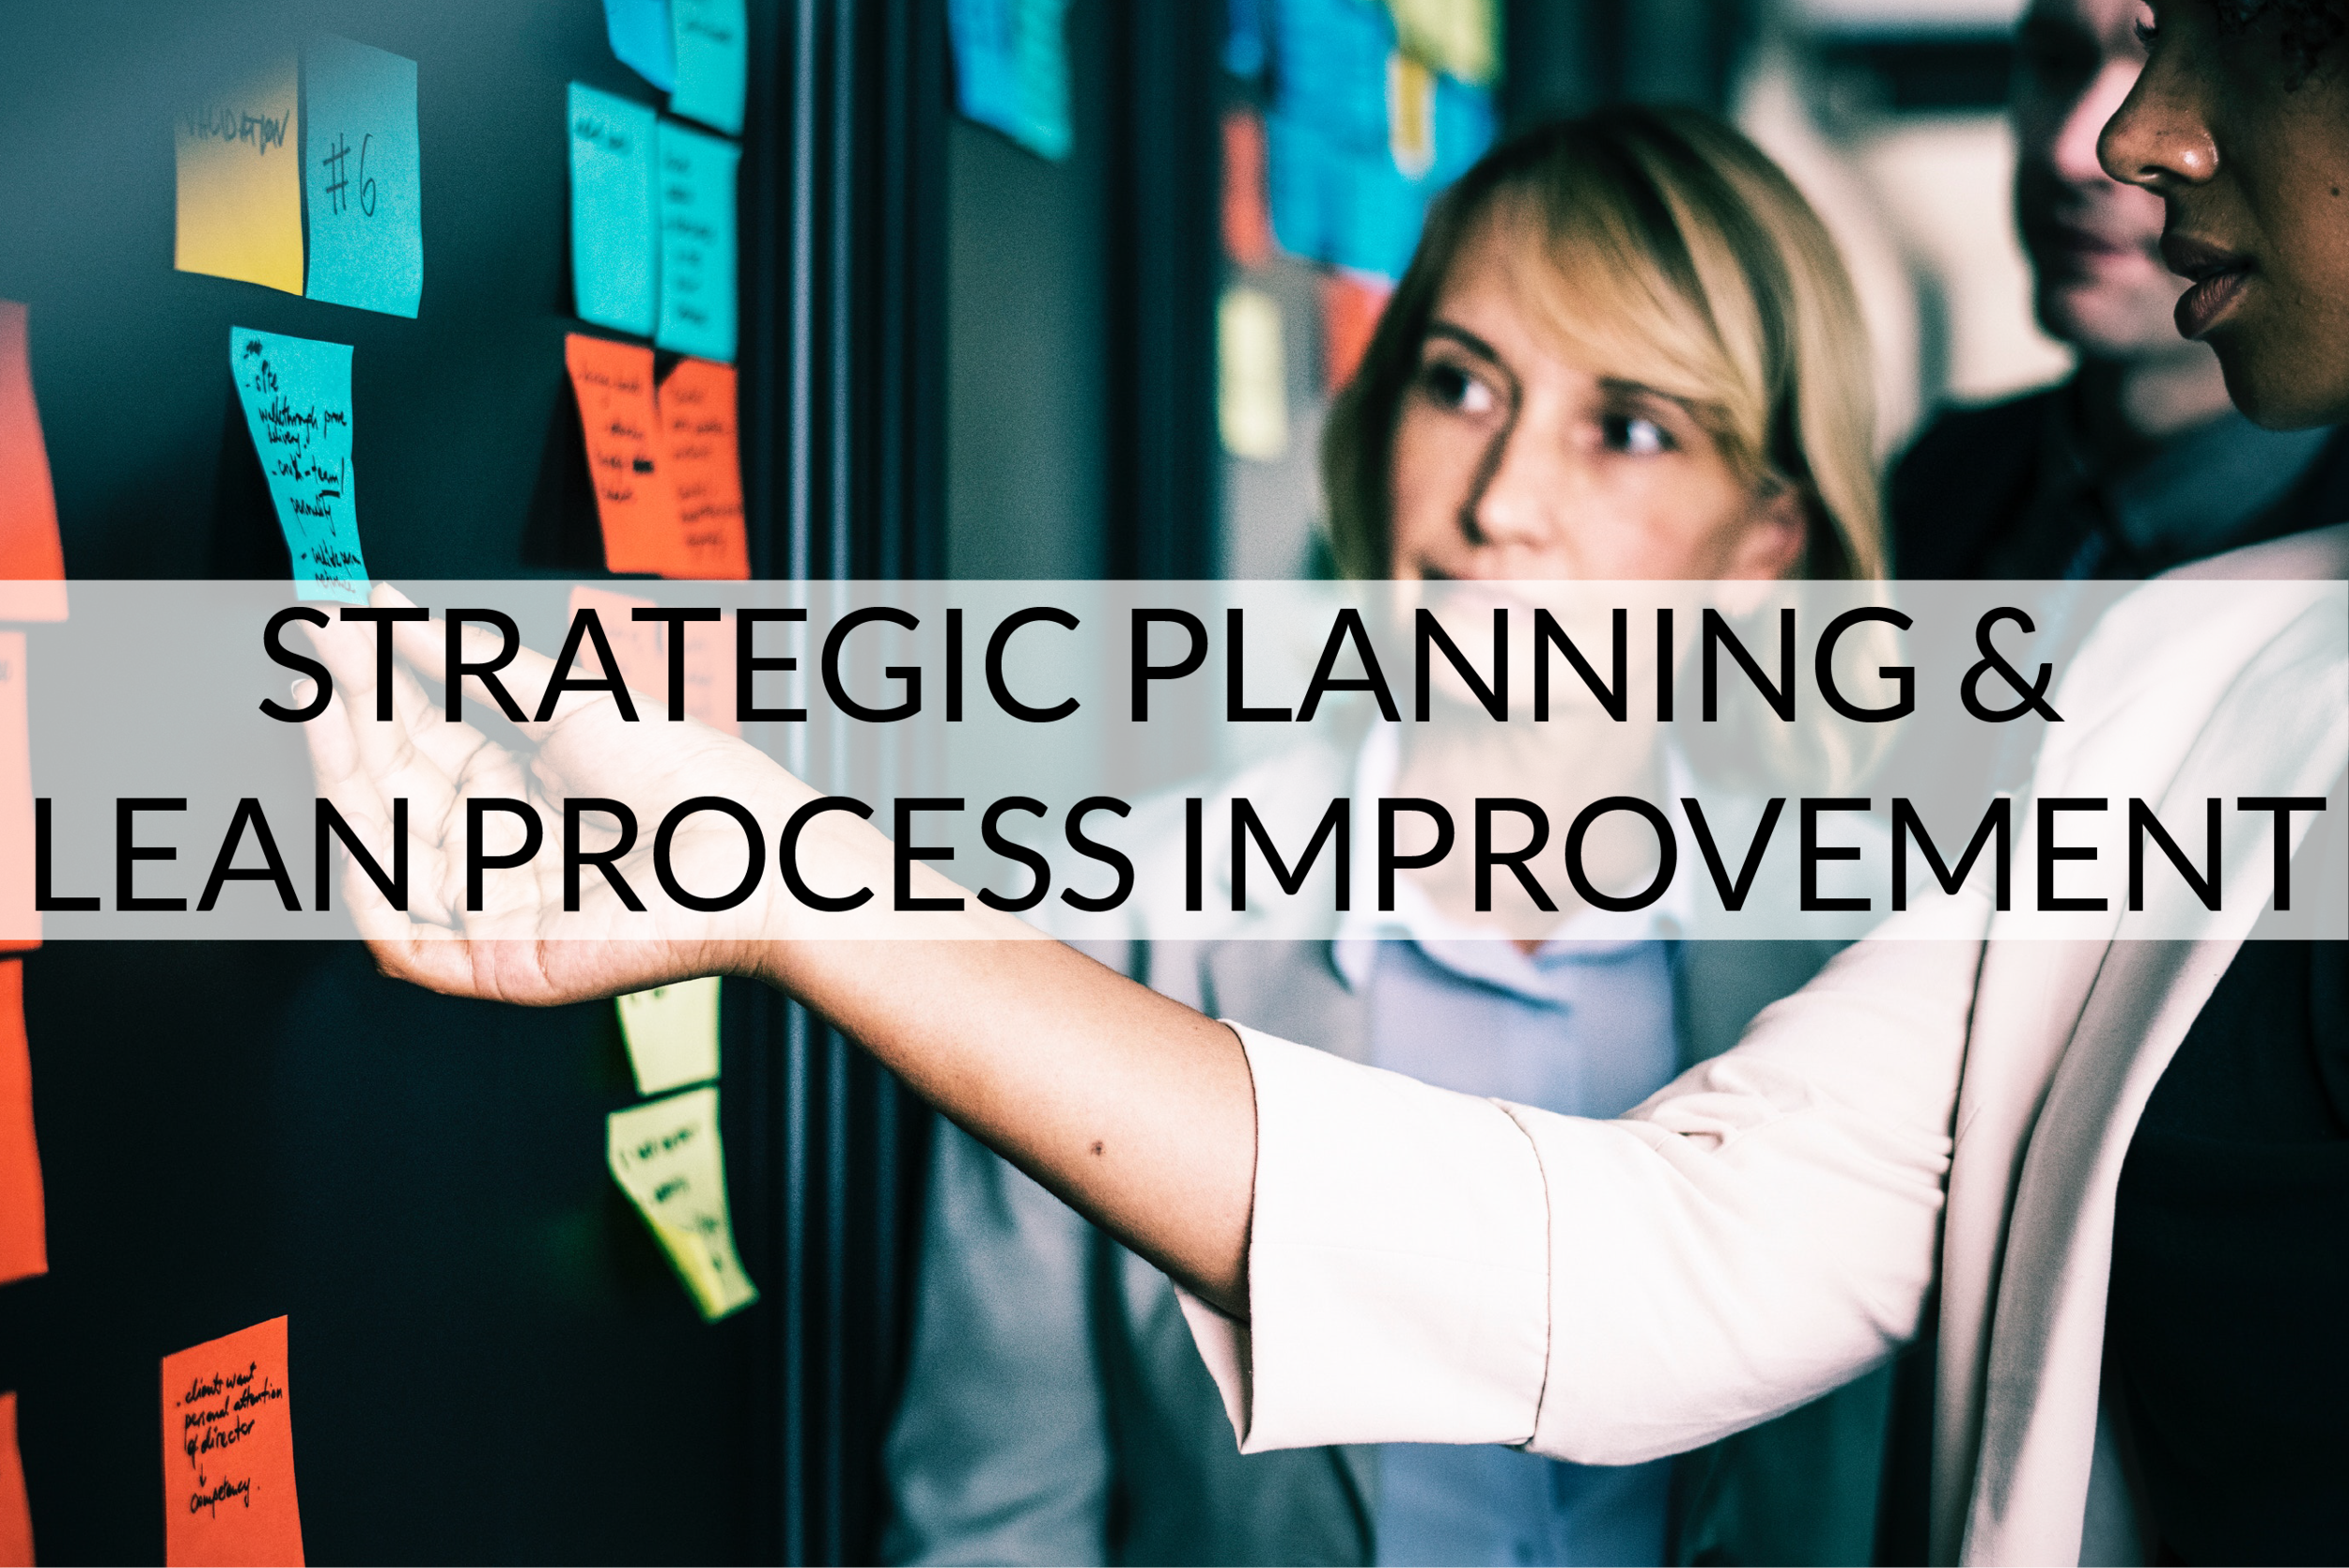 Strategic Planning-01-01.png